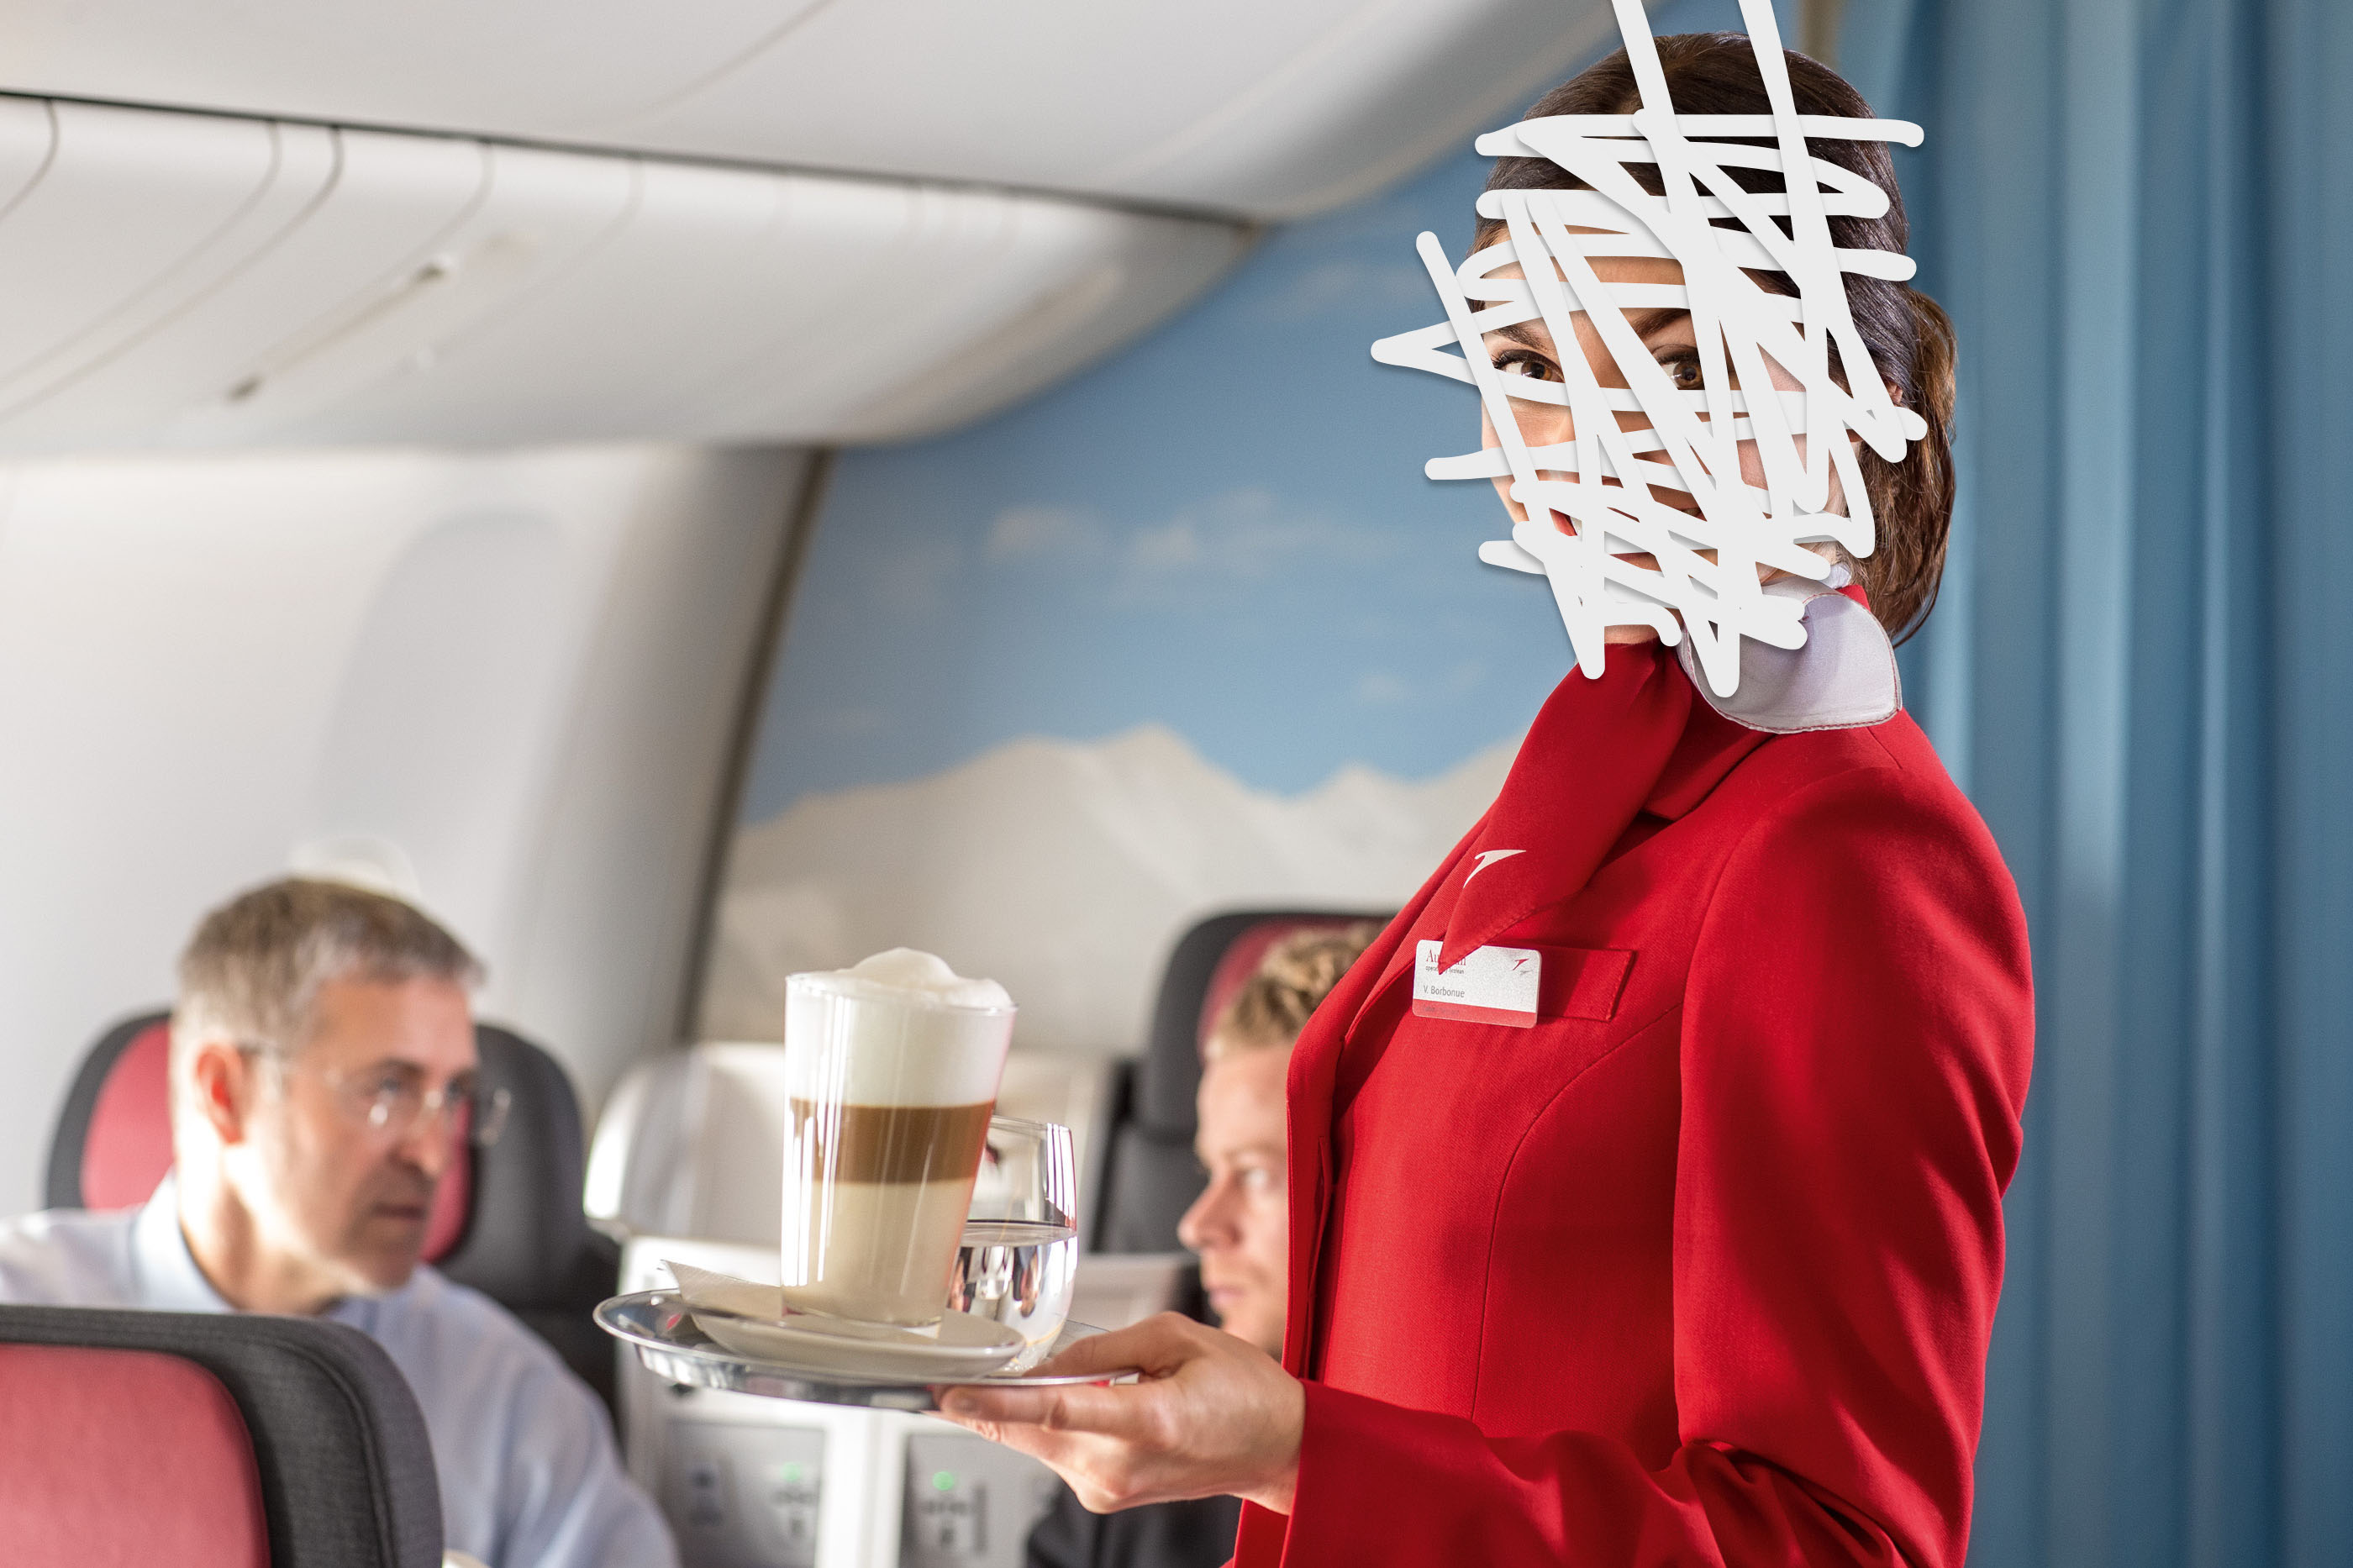 Stock Image (not Of The Flight Attendant We Interviewed) Via Wikimedia  Commons And Austrian Airlines